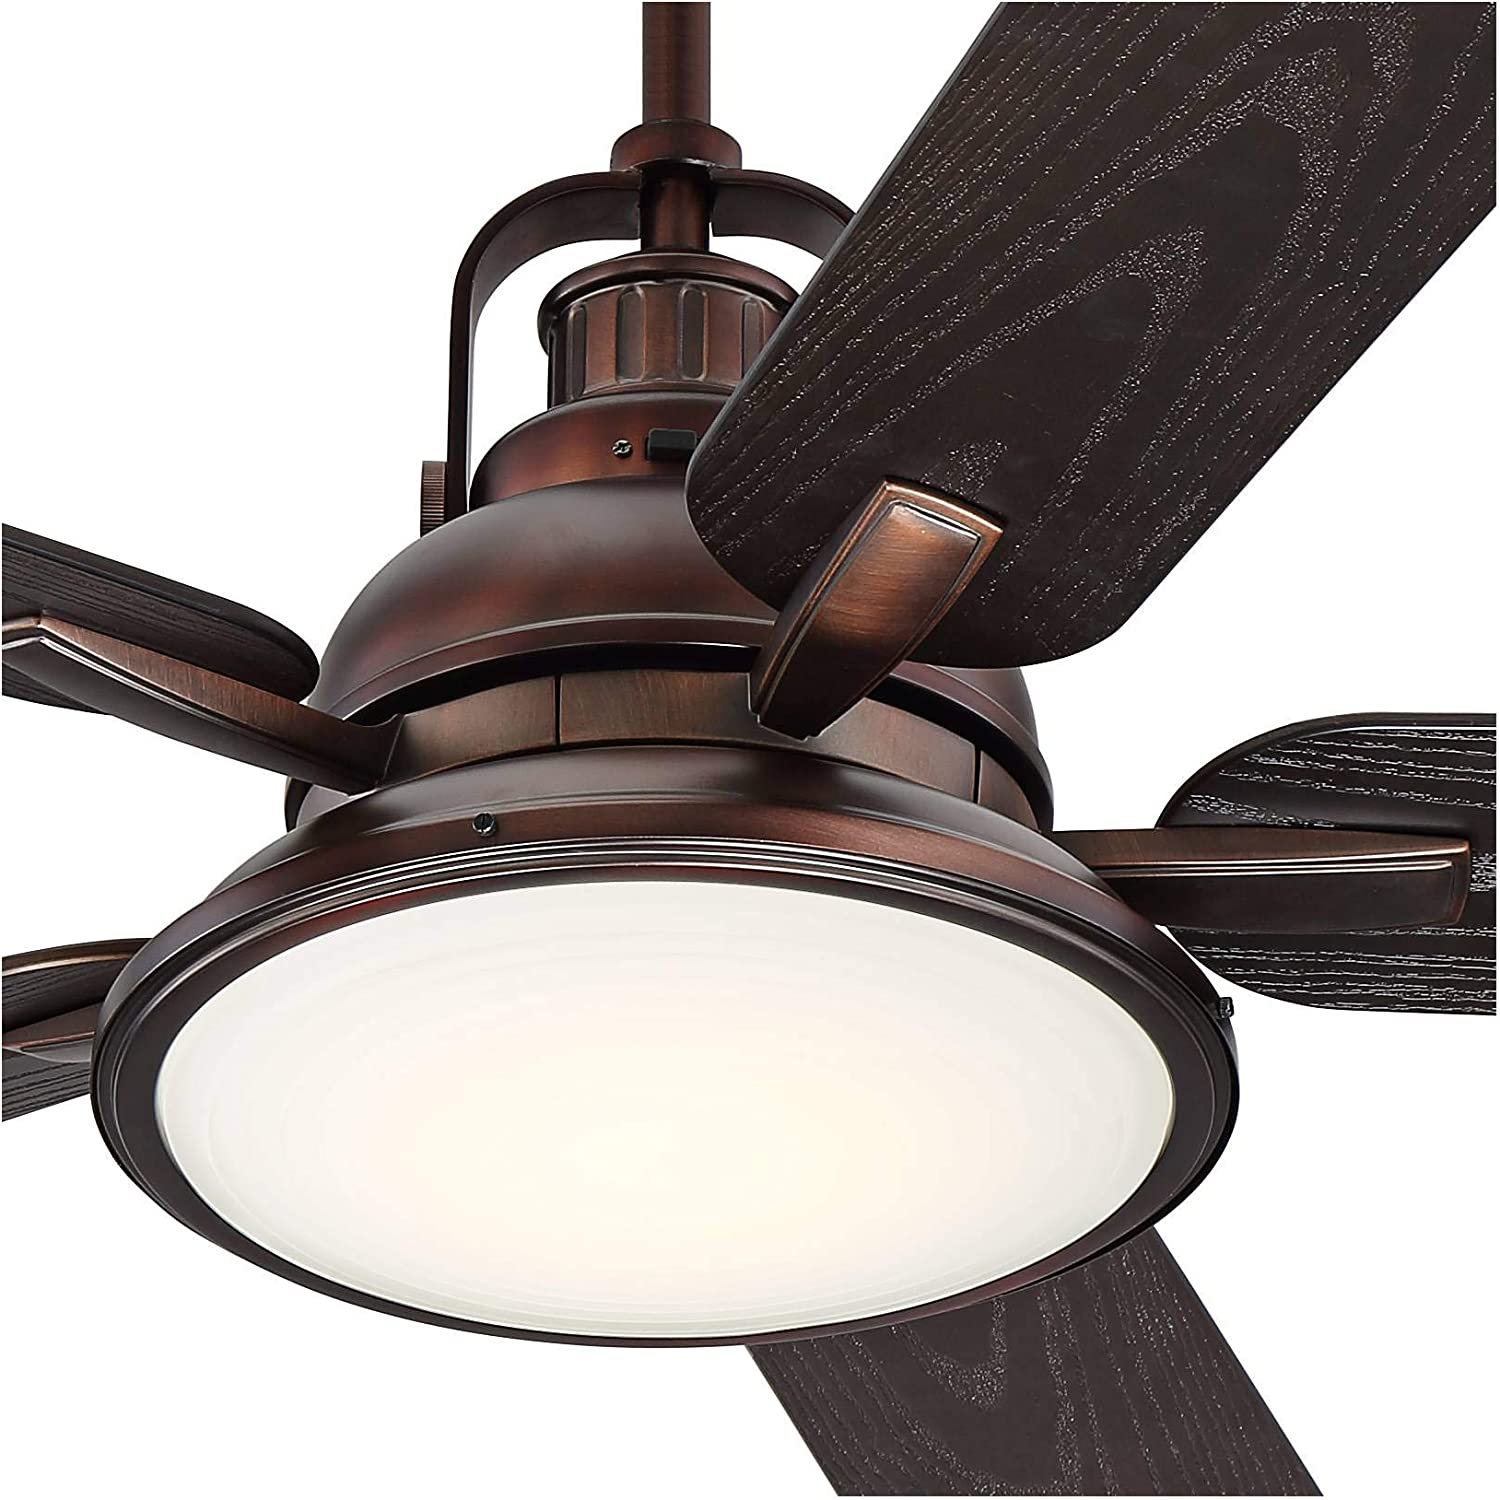 Buy 60 Wind And Sea Industrial Indoor Outdoor Ceiling Fan With Light Led Remote Control Dimmable Oil Brushed Bronze Brown Wet Rated For Patio Exterior House Porch Gazebo Garage Barn Casa